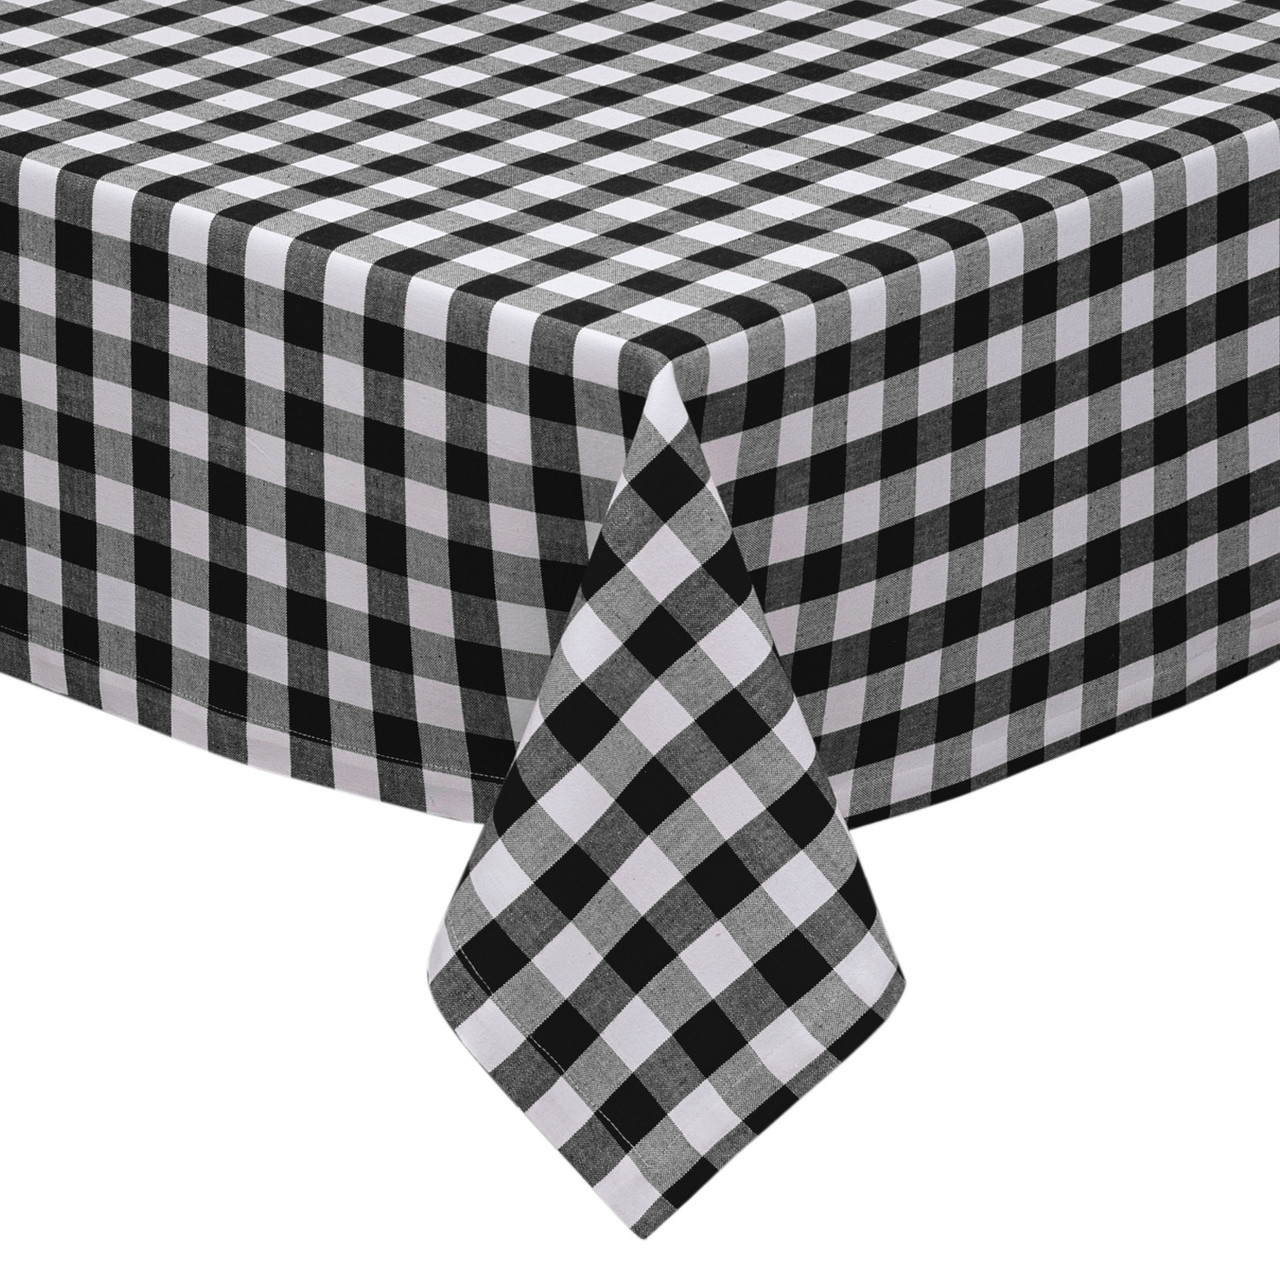 Black And White Checkered Kitchen Dining Room Tablecloth Gingham Plaid Design Cotton Rich 54 X72 58 X102 X84 70 Round My Infinity Store